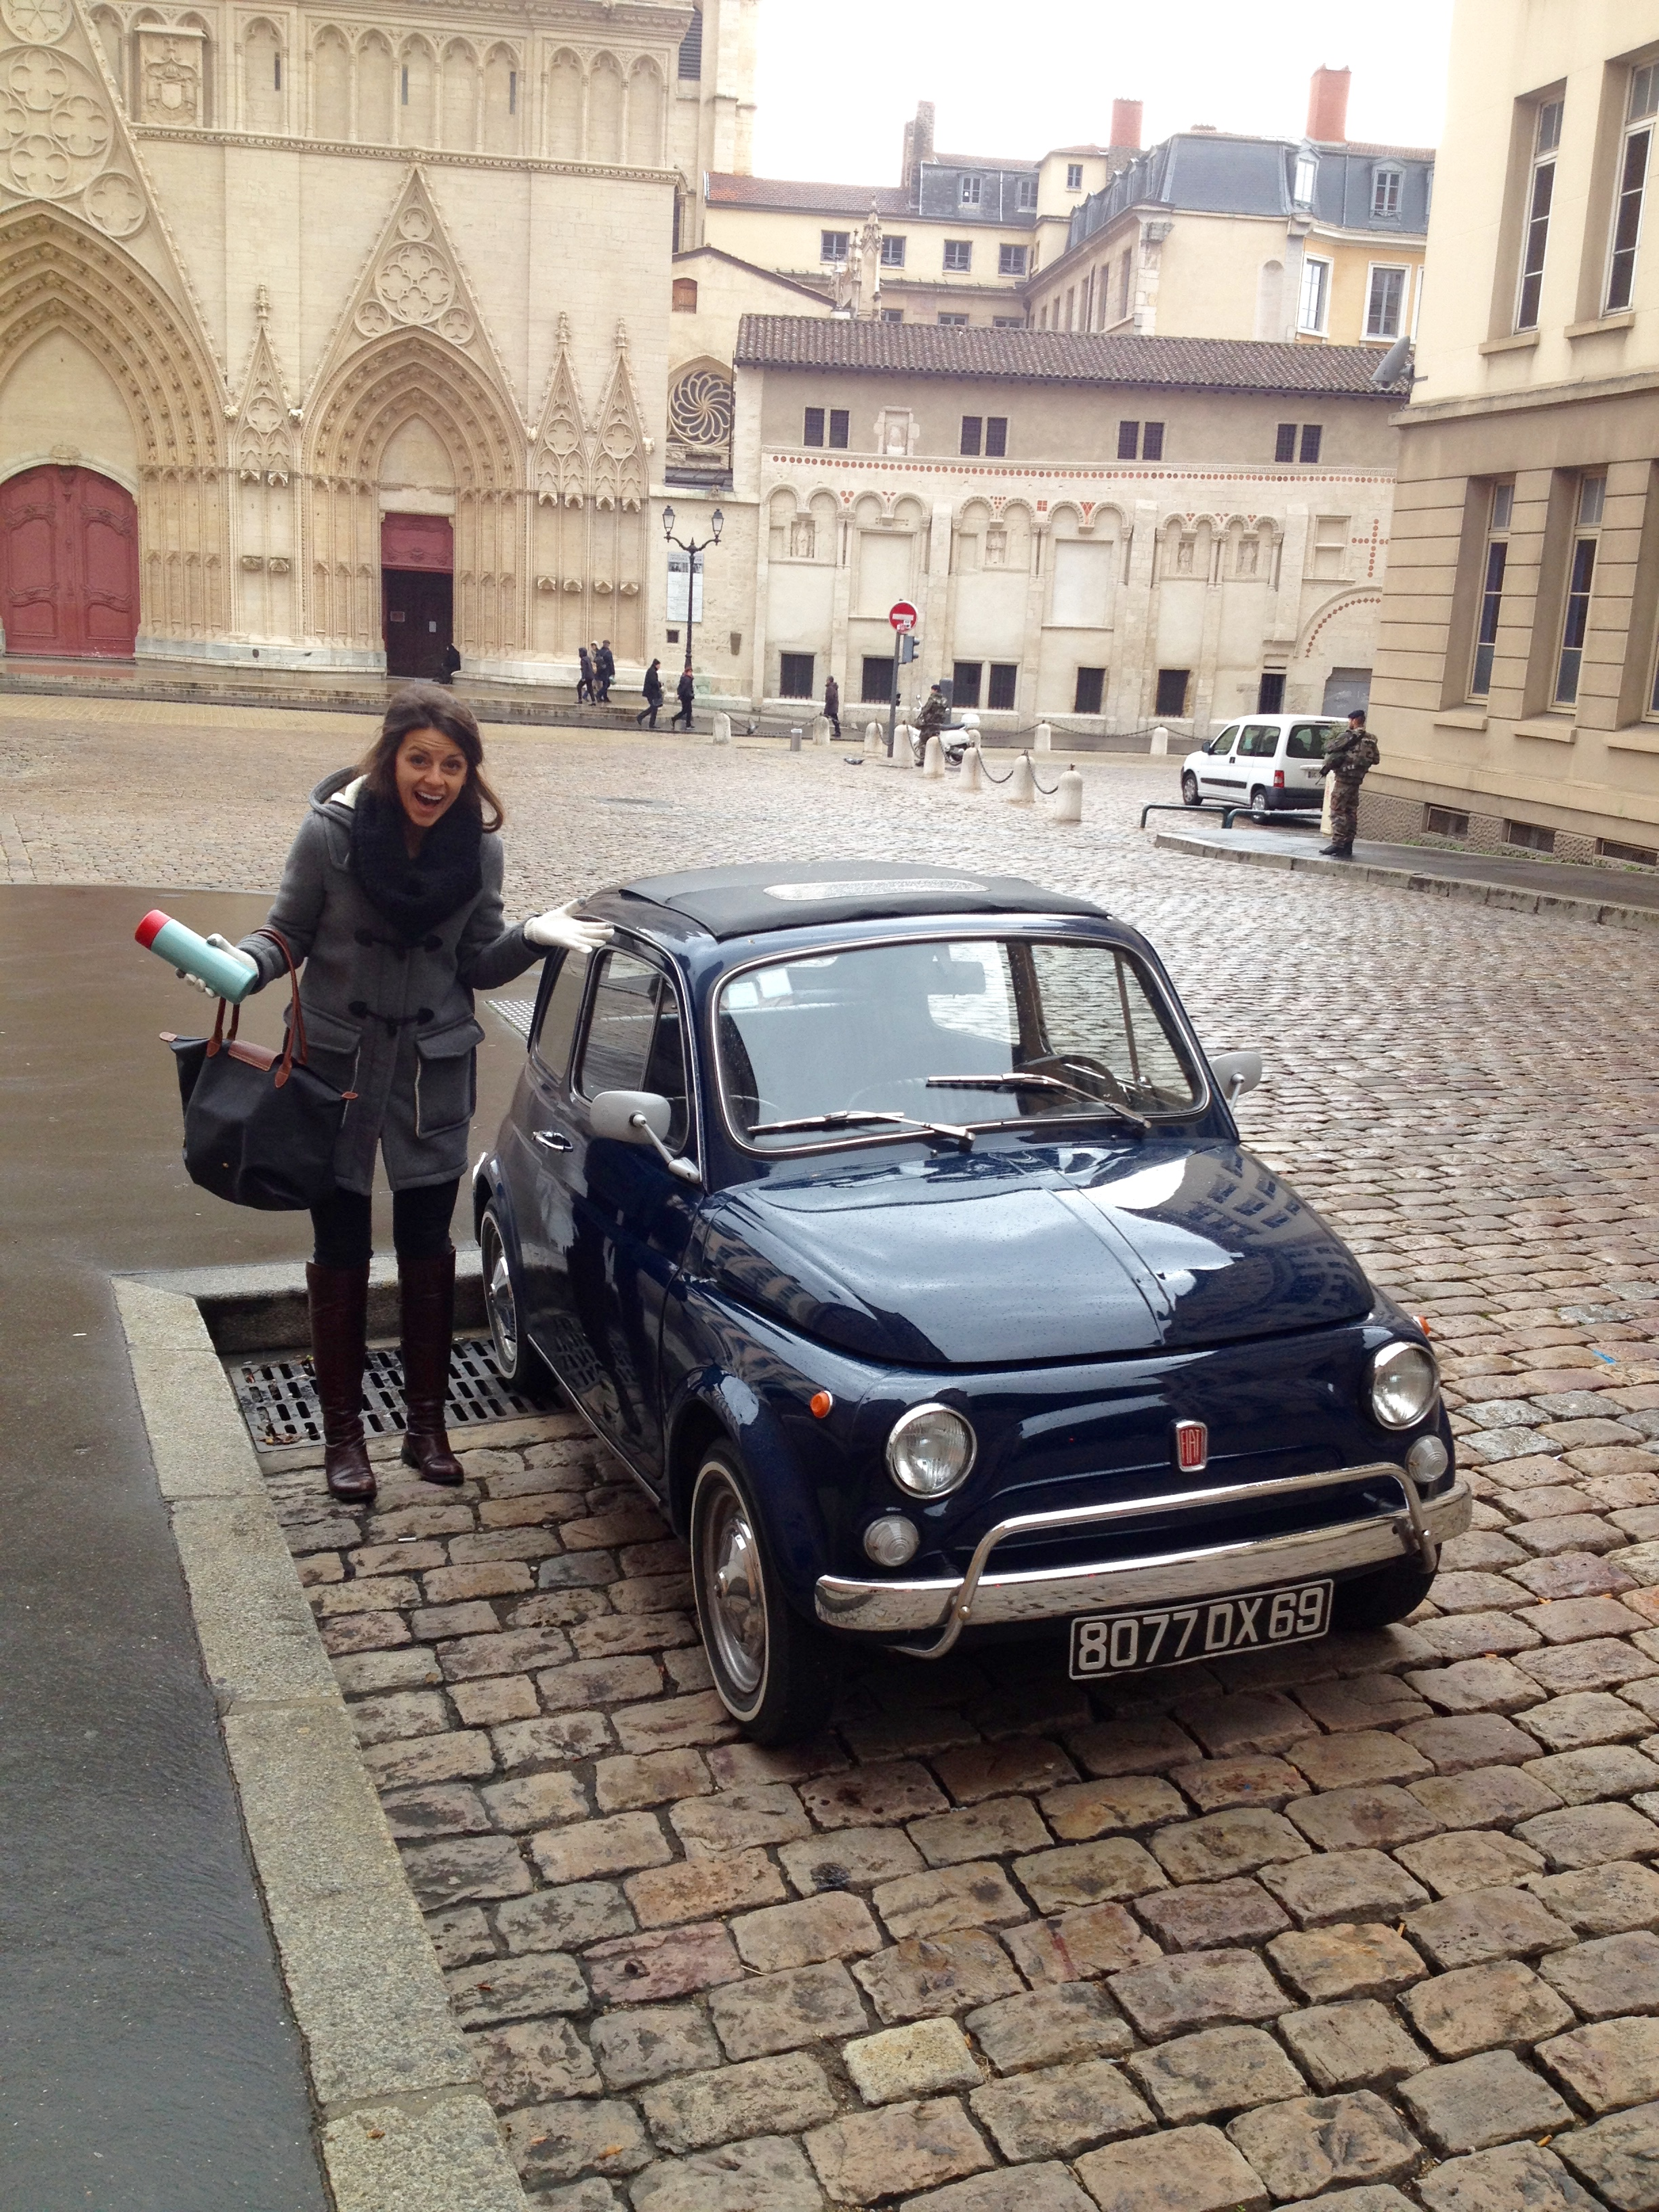 We came across this adorable little Fiat in front of the Cathédrale Saint-Jean and couldn't resist snapping a pic.